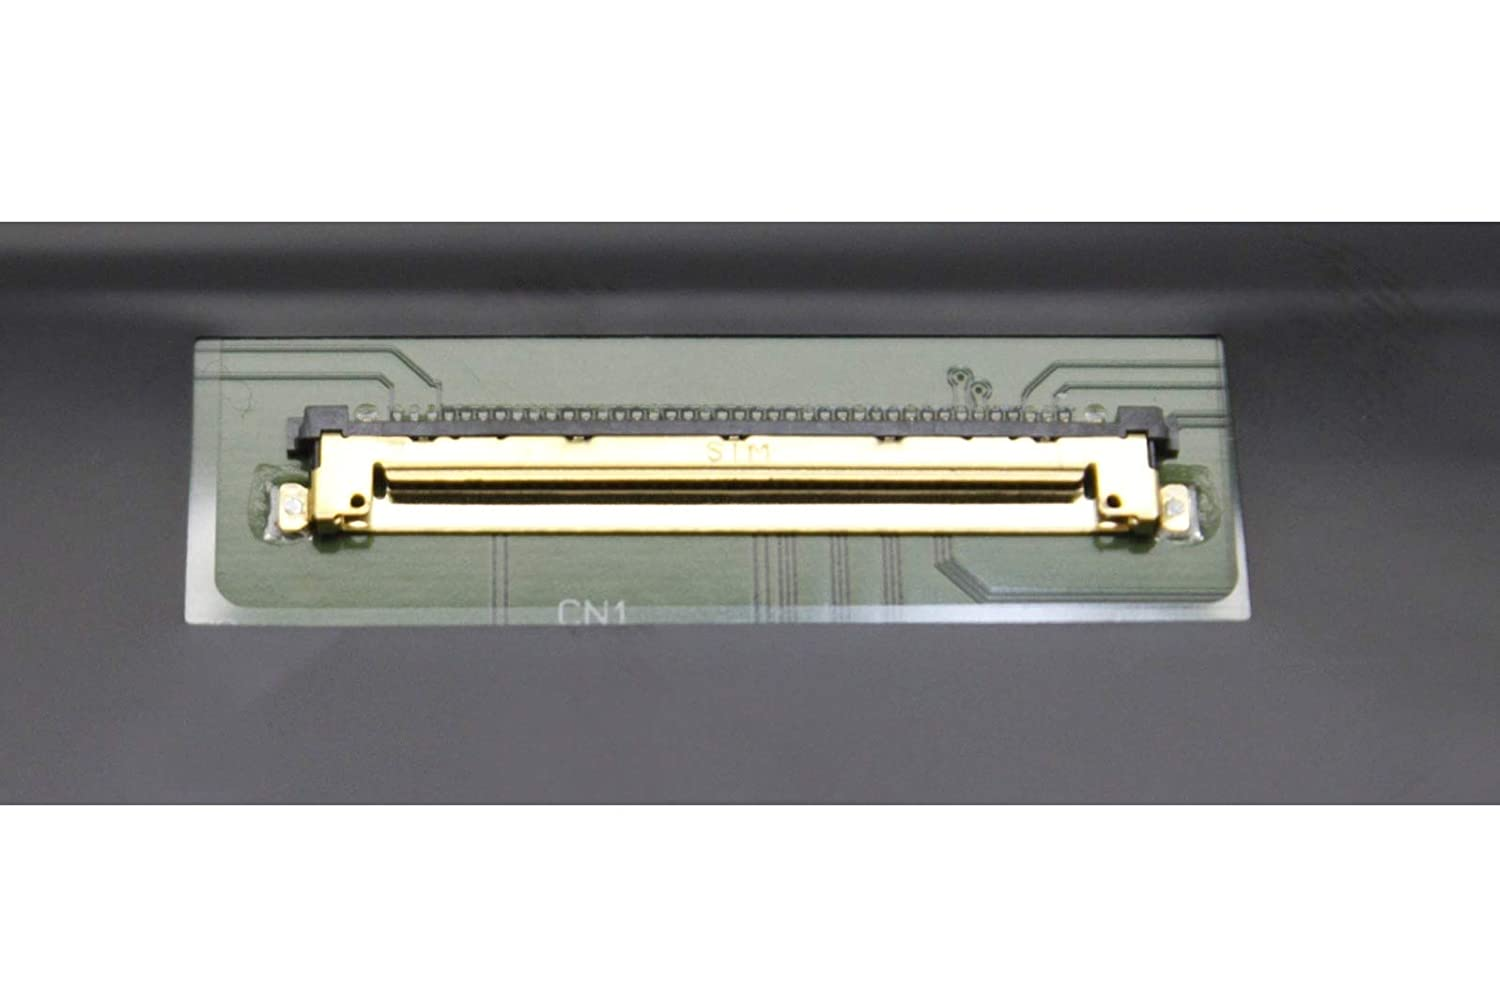 Wikiparts NEW 15.6/'/' LED LCD REPLACEMENT SCREEN FOR ACER ASPIRE PEW71 5742 LAPTOP GLOSSY DISPLAY PANEL